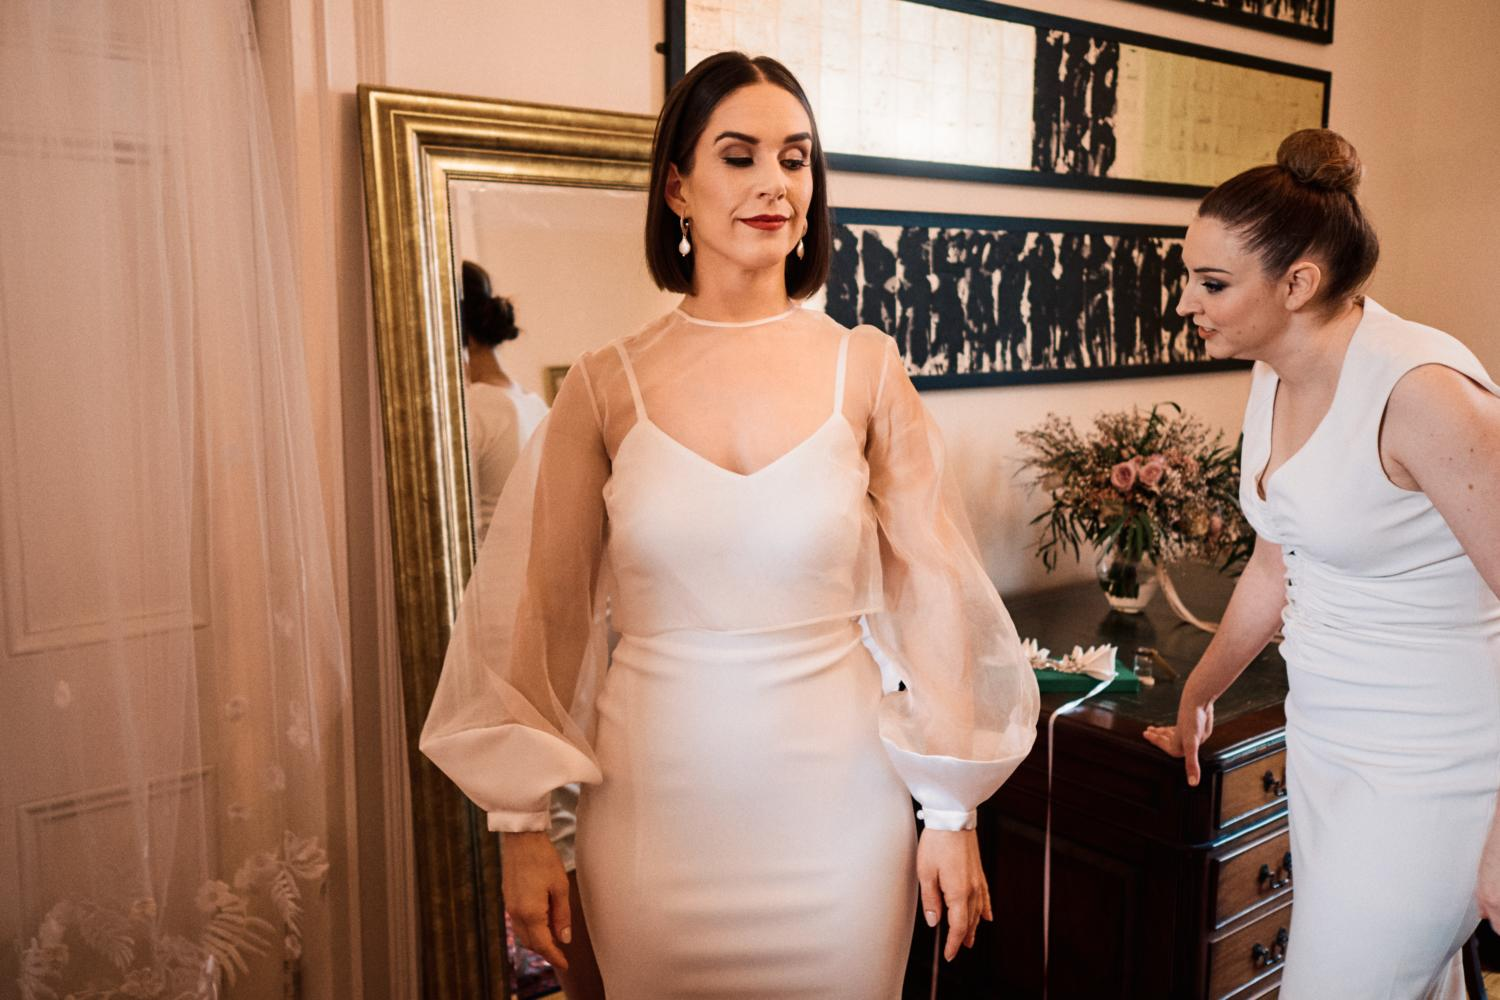 A bride tries on her dress in front of a mirror